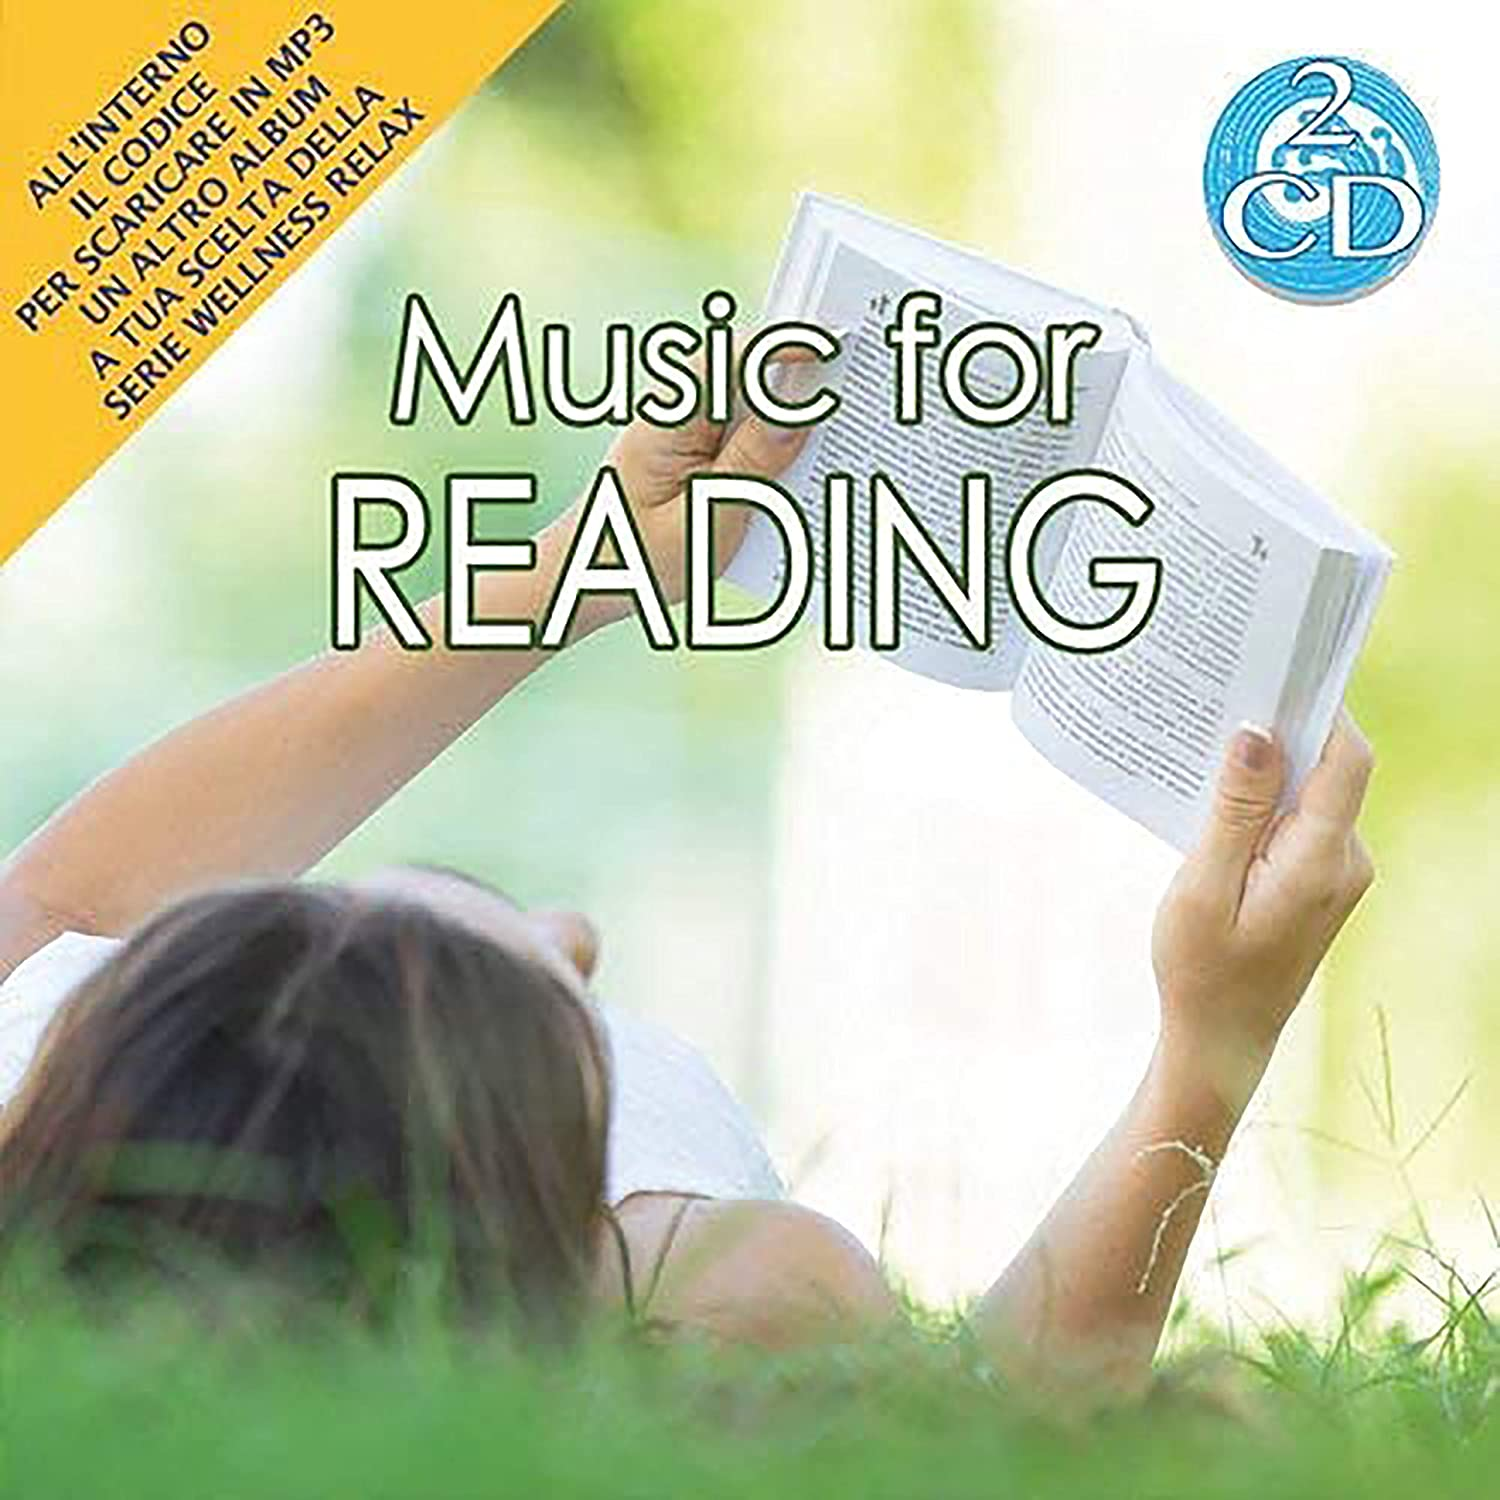 Music for Reading - Lounge, Chillout, Guitarra Acústica y Piano ...